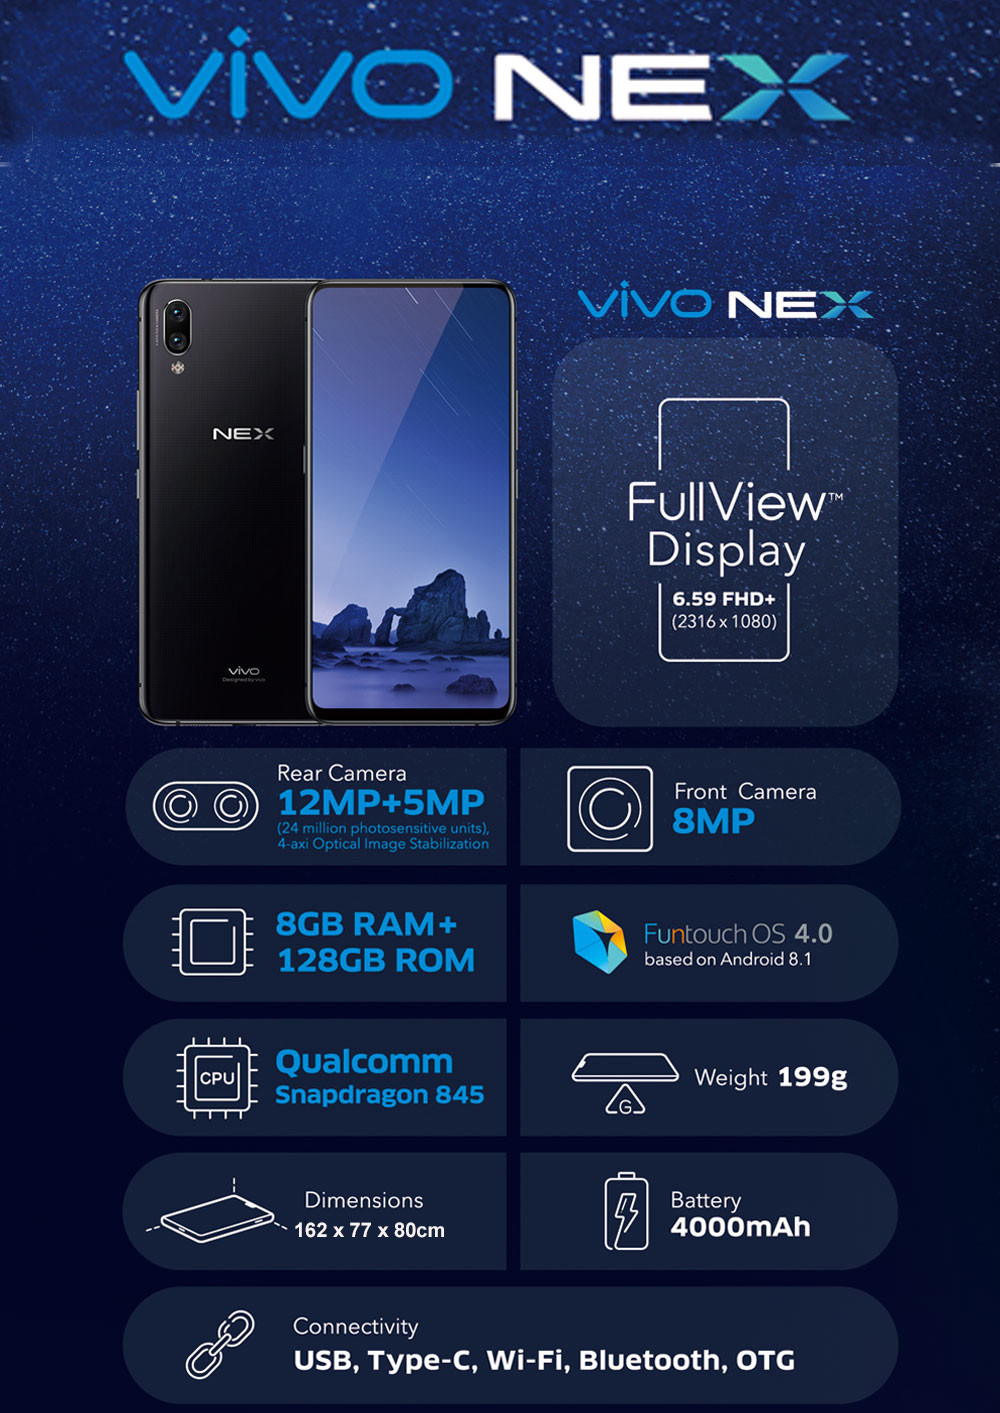 vivo nex 4g phablet 6 59 inch android 8 1 snapdragon 845 octa core 2 8ghz 8gb ram